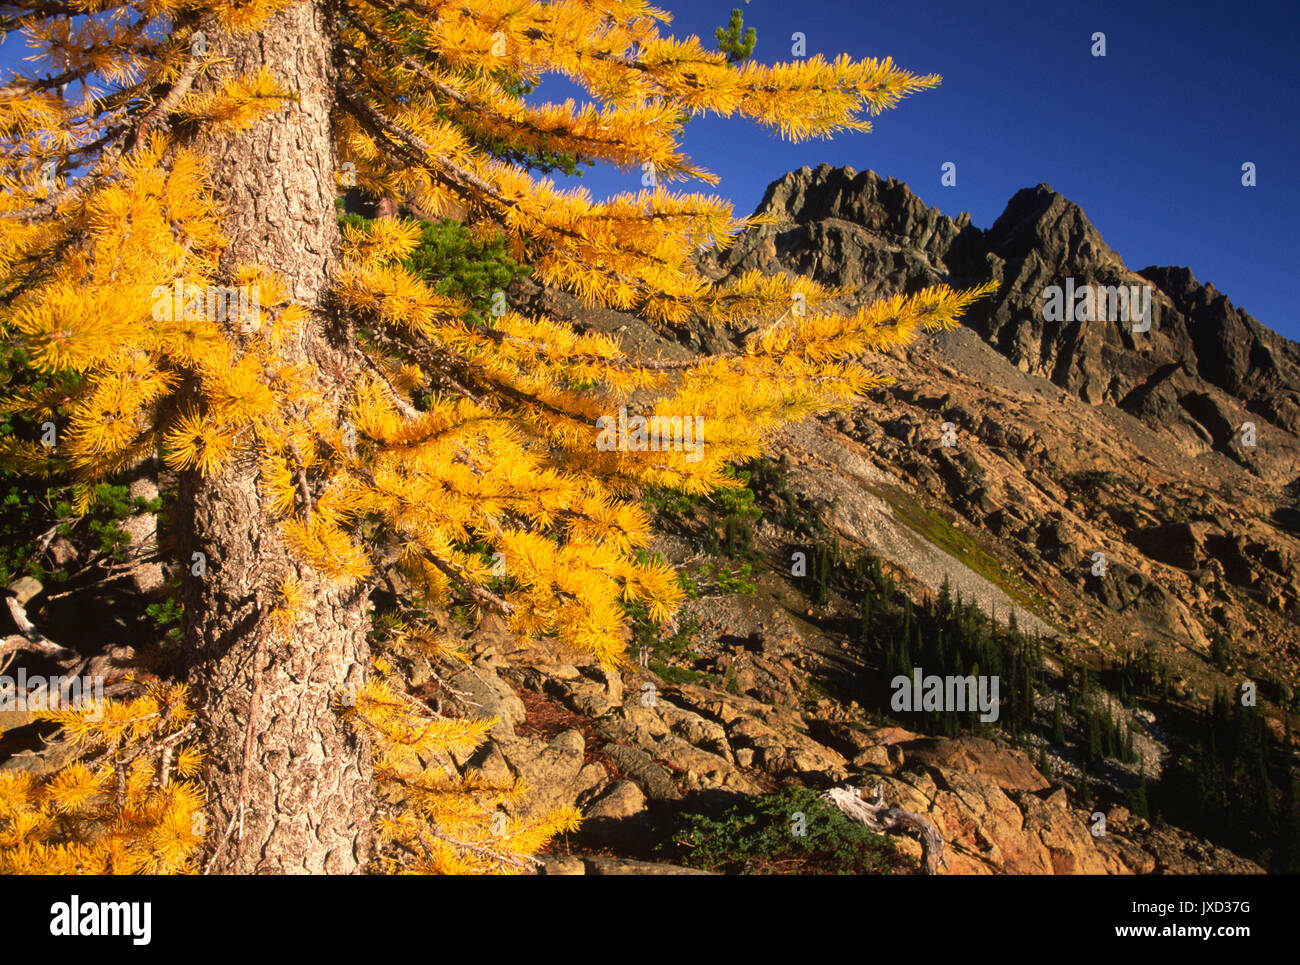 Larch with Ingalls Peak, Alpine Lakes Wilderness, Wenatchee National Forest, Washington - Stock Image